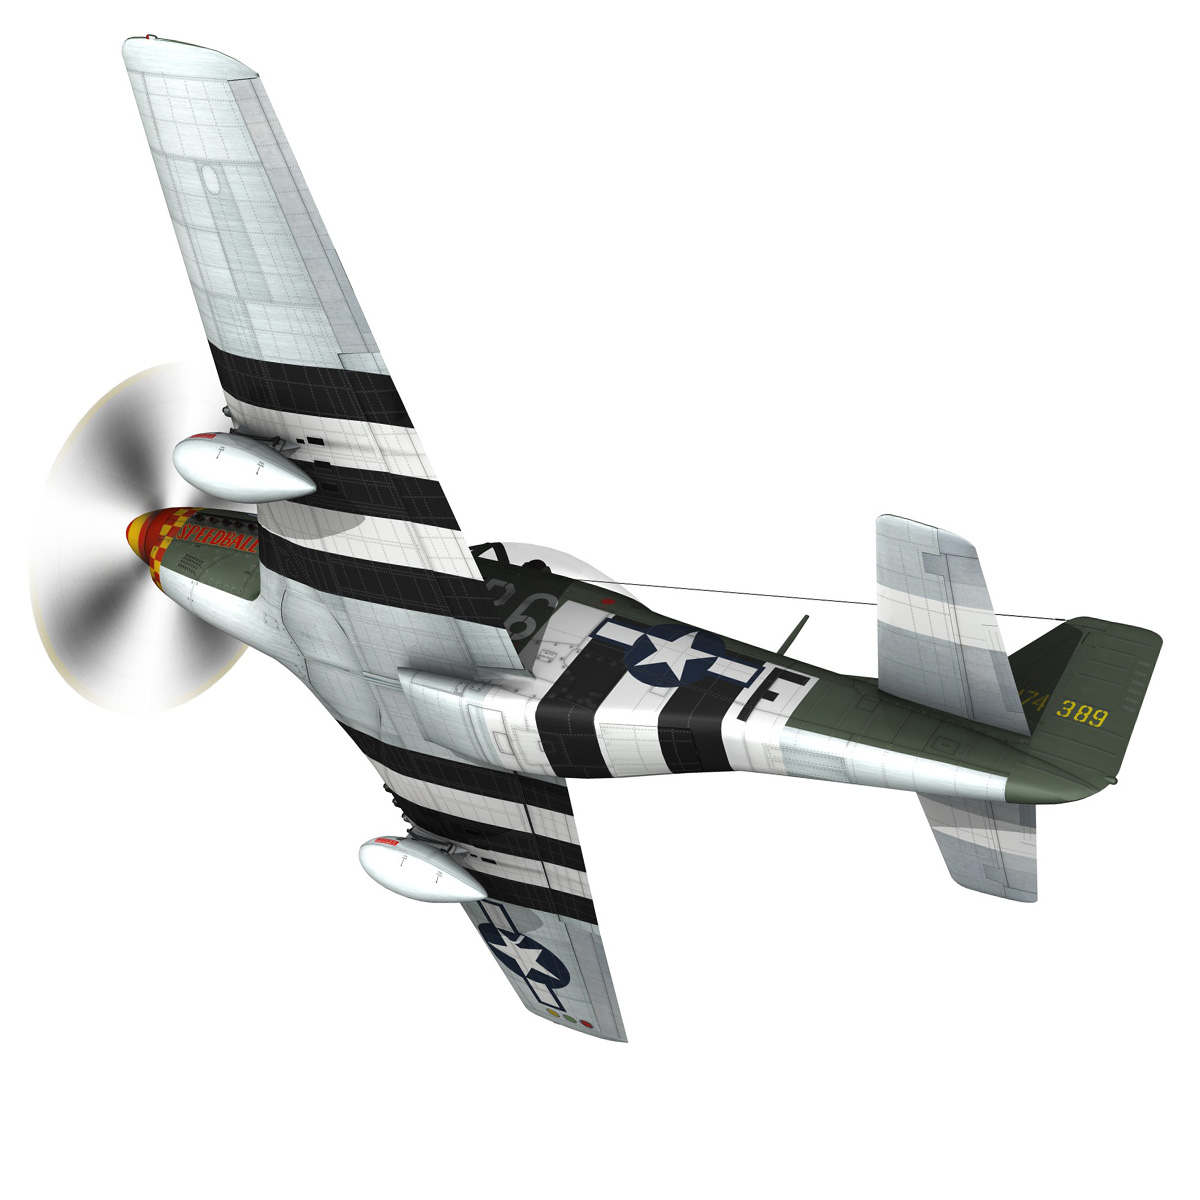 north american p-51d mustang – speedball alice 3d model fbx c4d lwo obj 280313